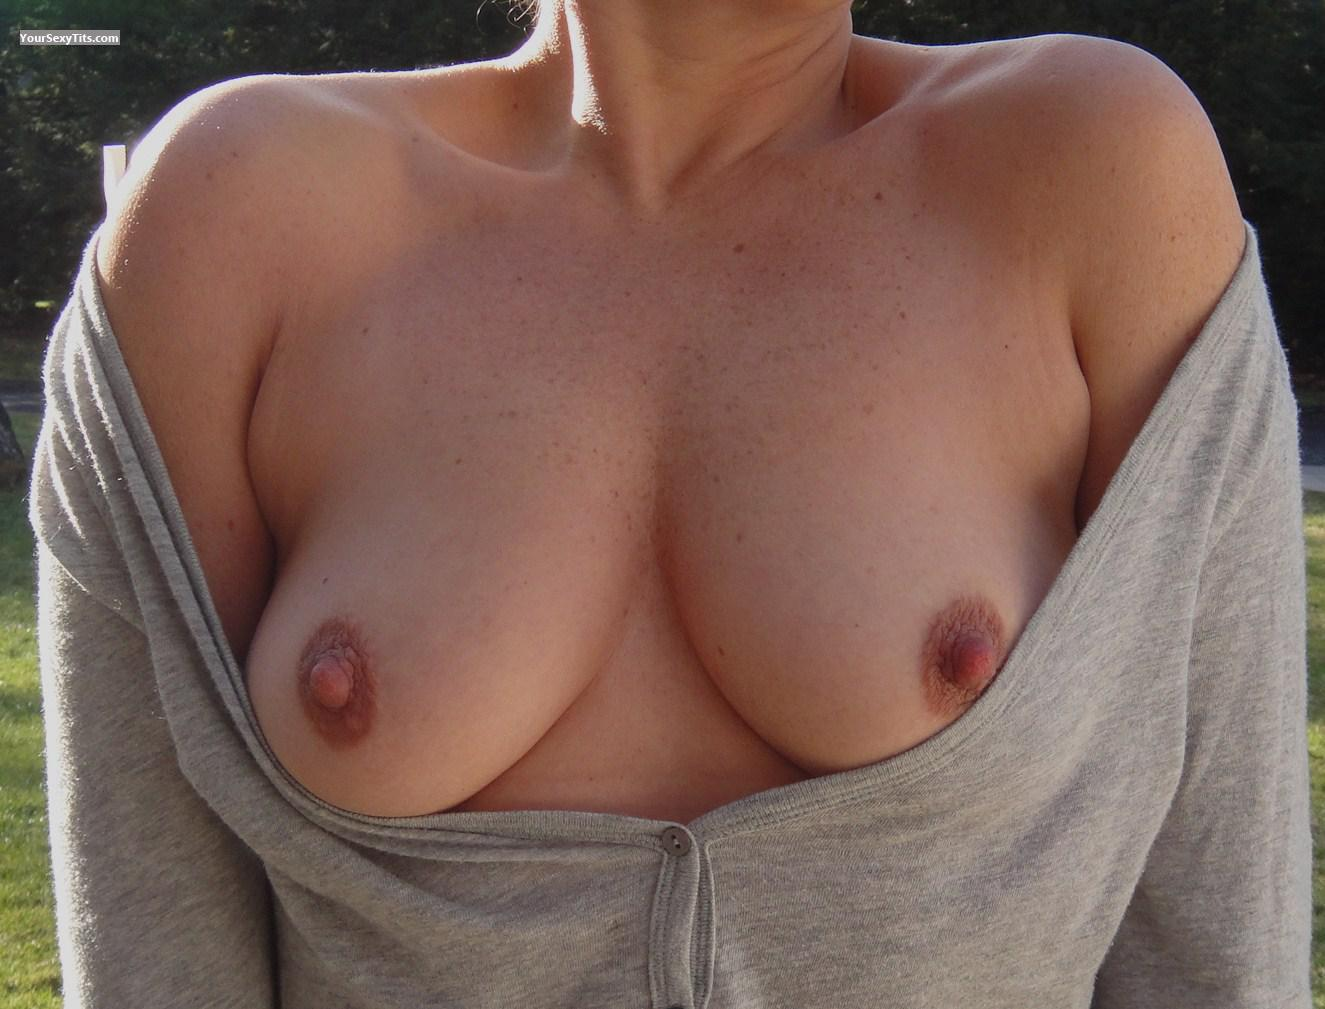 Tit Flash: My Friend's Medium Tits - Cindy from Bermuda